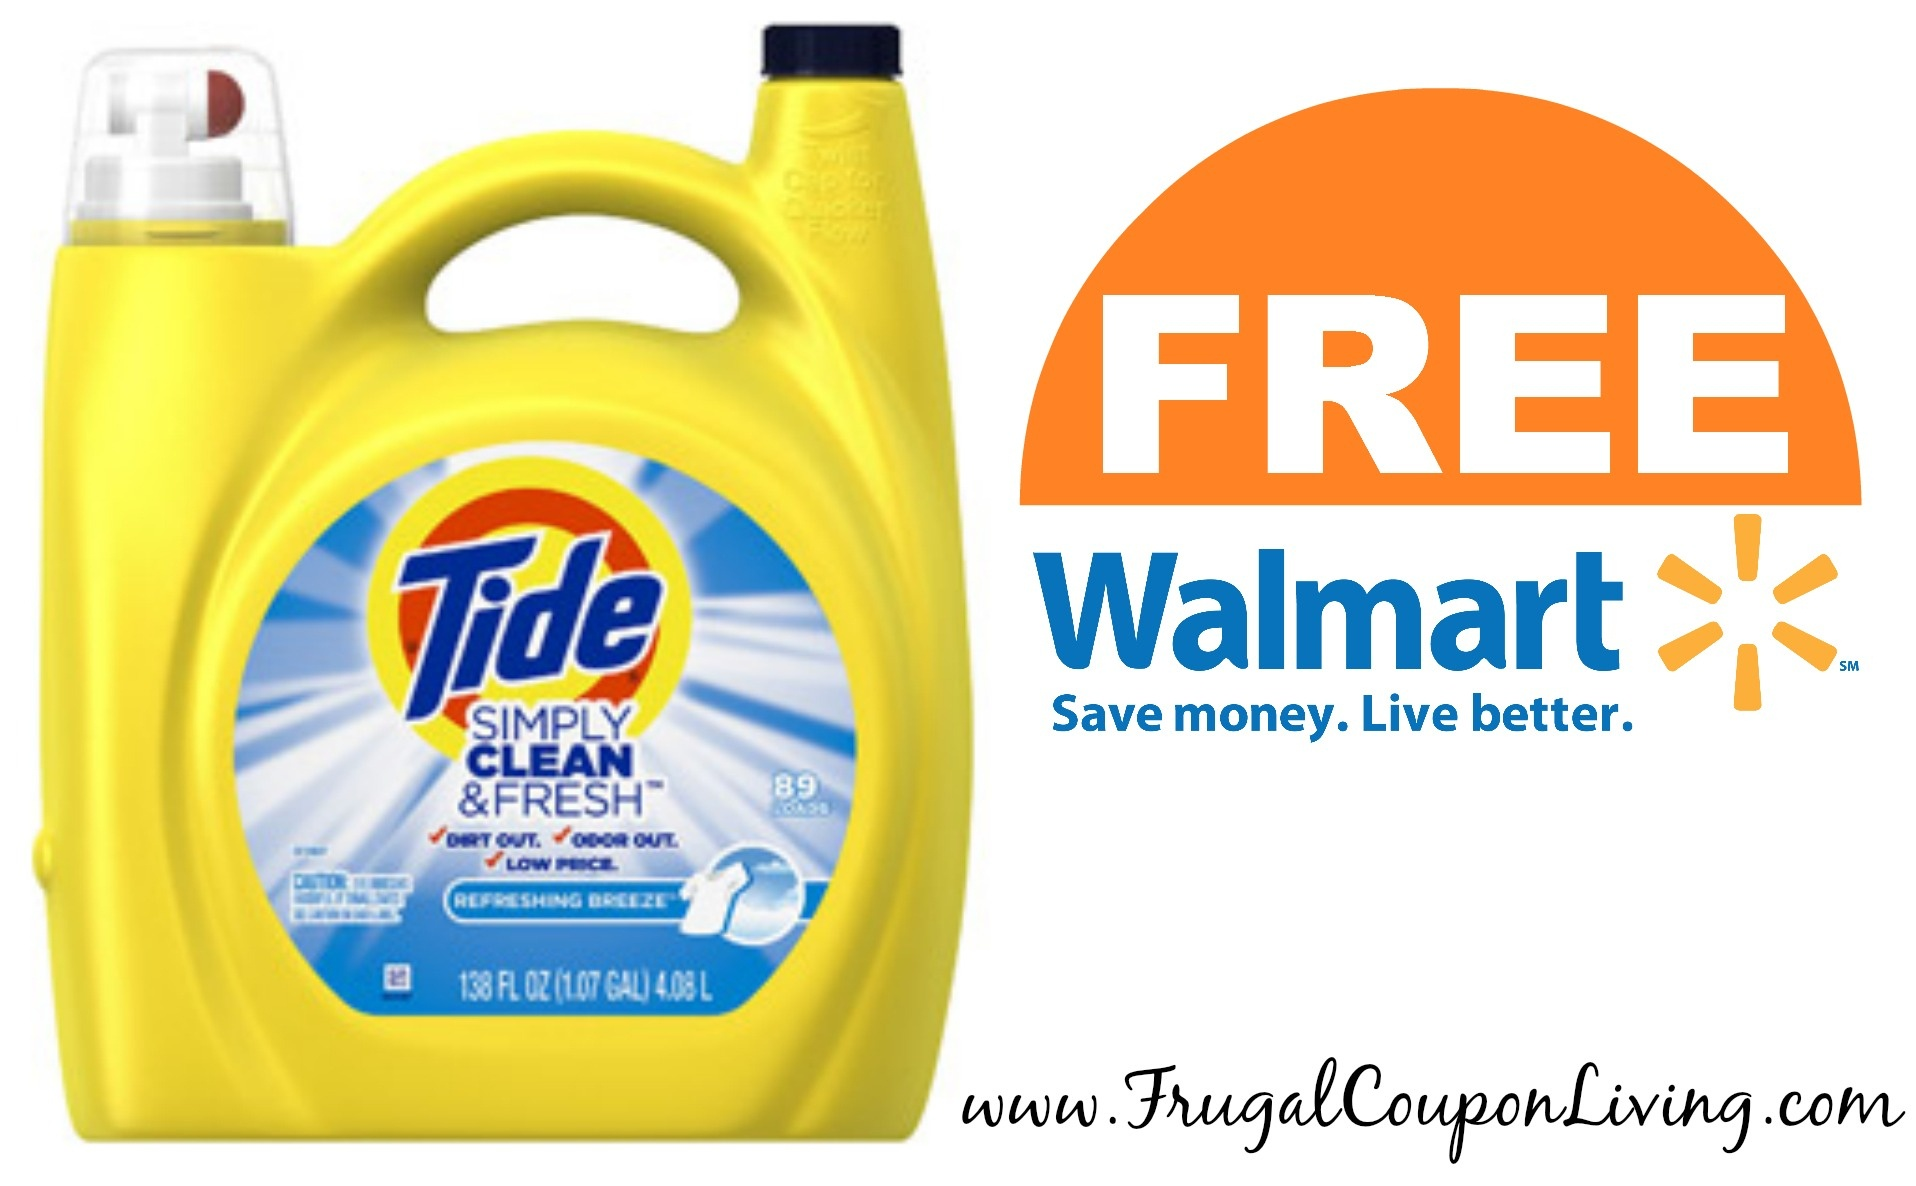 Tide Coupons Detergentdeal Starting At Each Laundry Room Wall Cabinets - Tide Coupons Free Printable